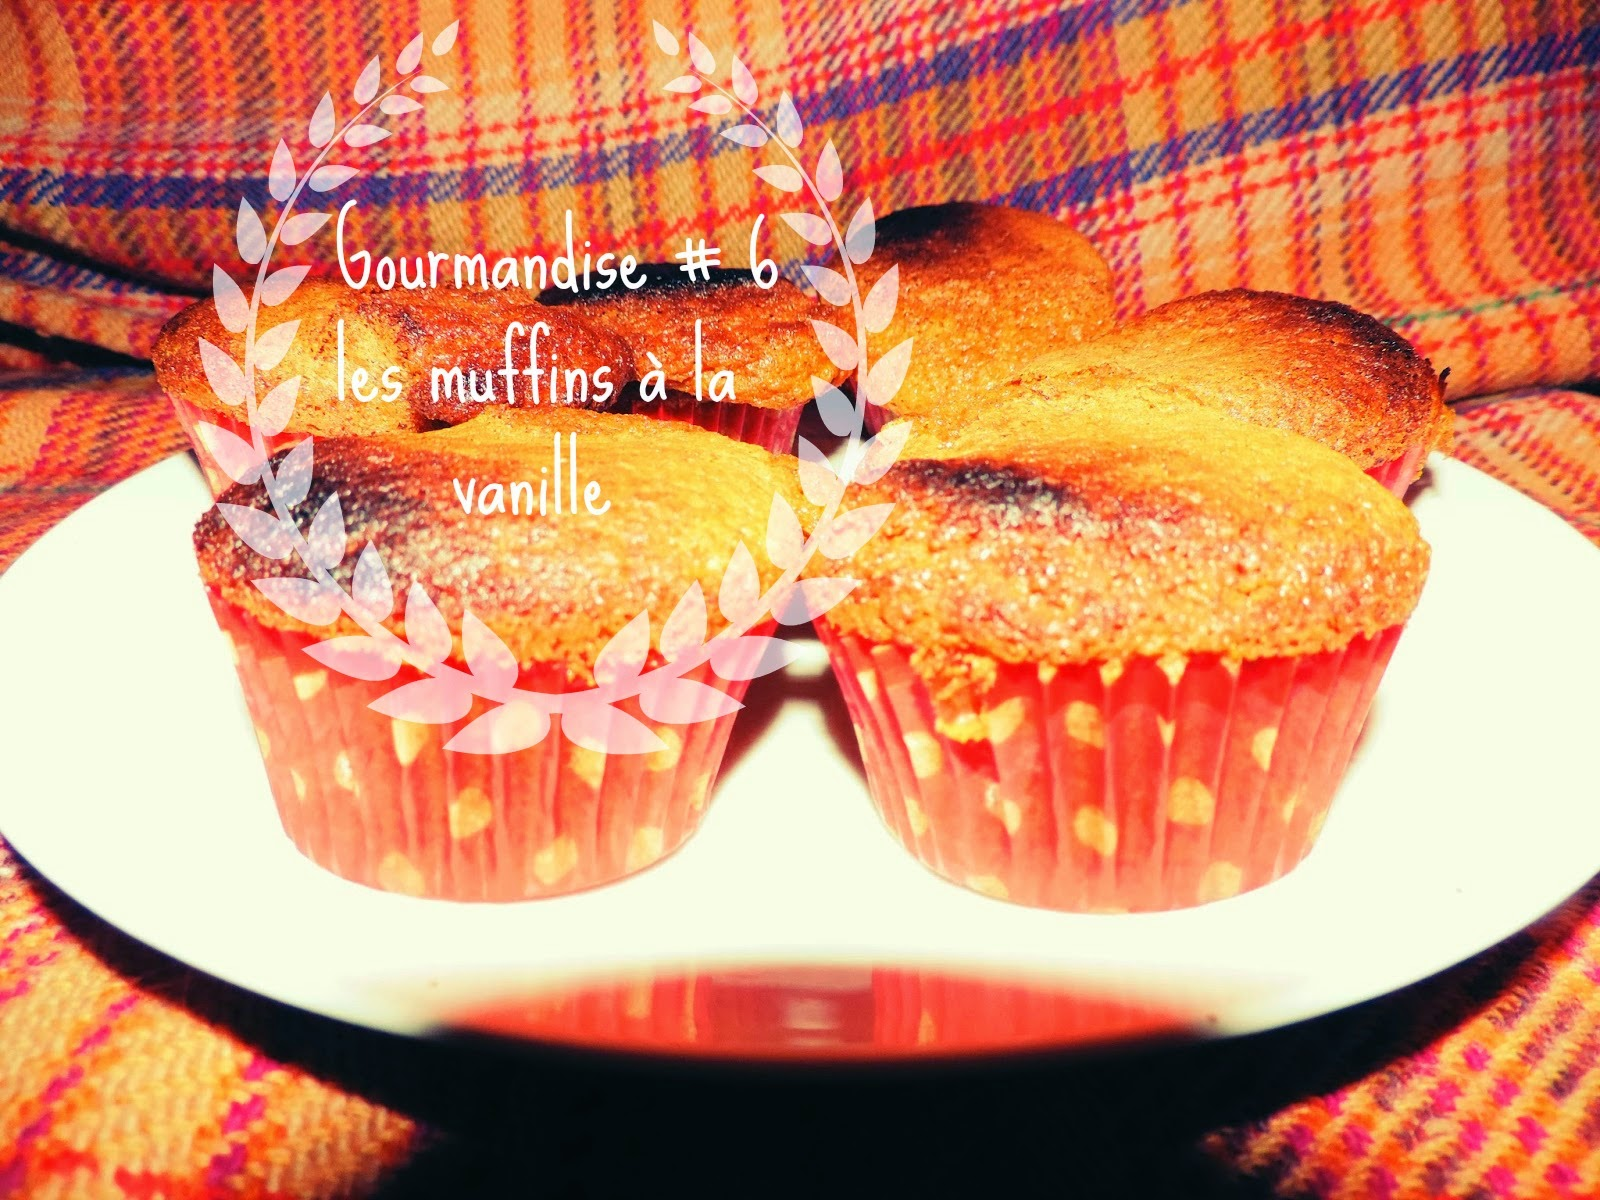 http://mynameisgeorges.blogspot.com/2014/03/gourmandise-7-les-muffins-tout-simple.html